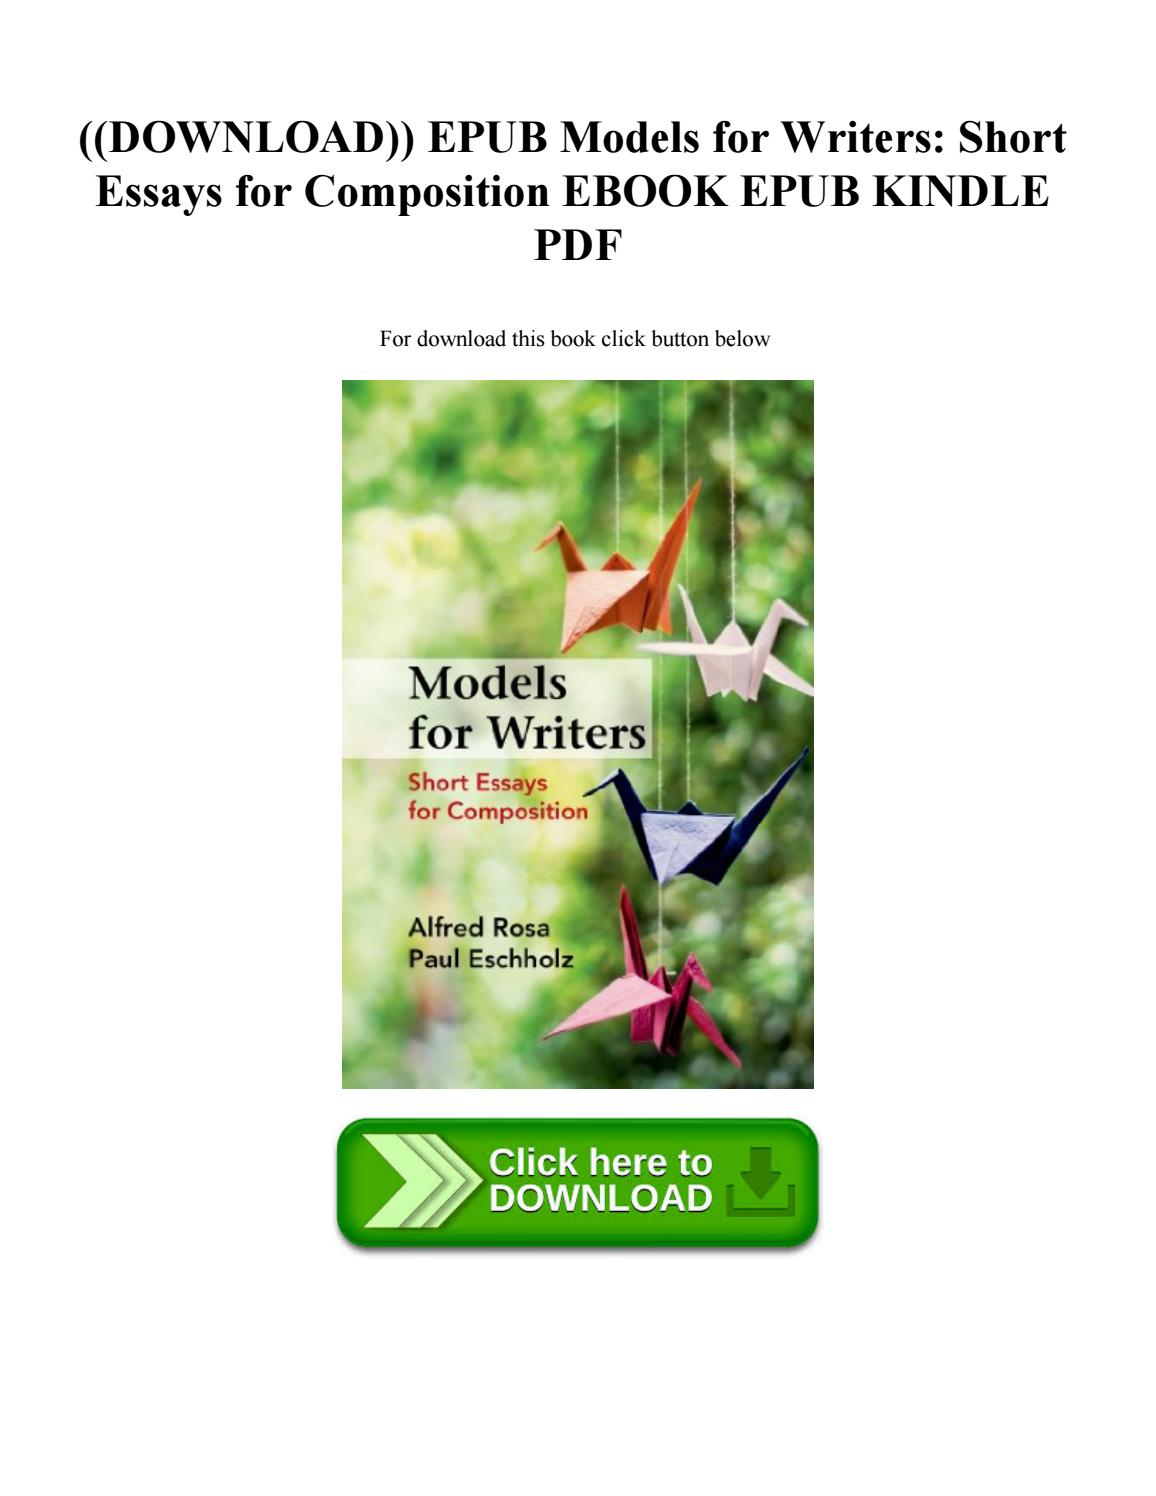 011 Essay Example Models For Writers Short Essays Composition Page 1 Singular 12th Edition 13th Pdf Full